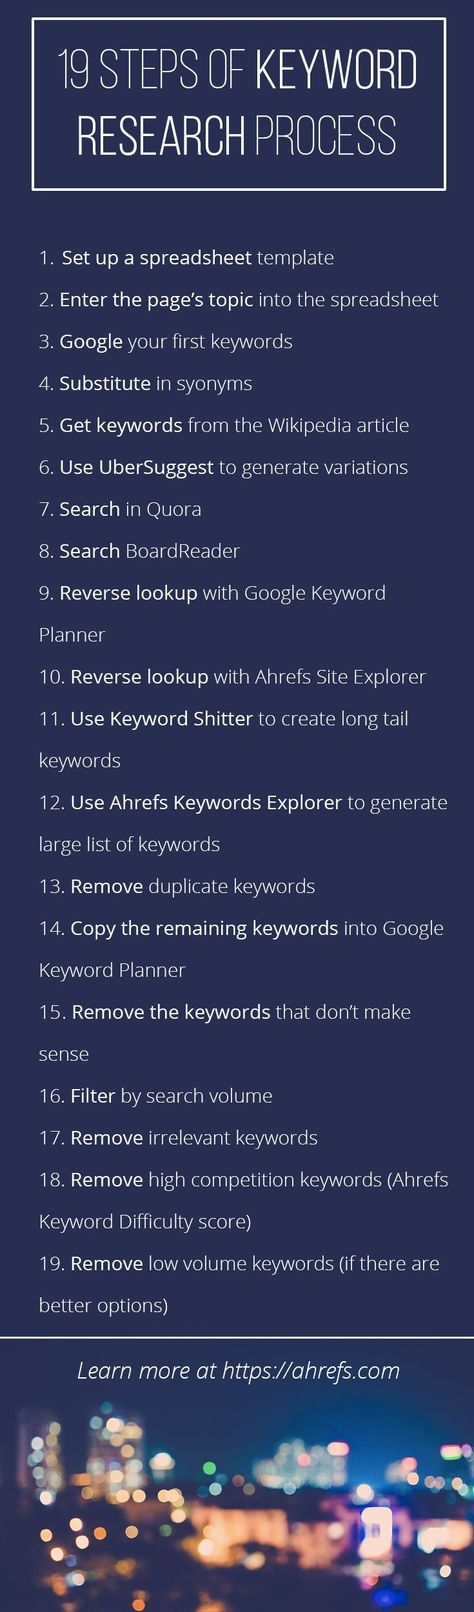 Keyword Research: The Beginner's Guide by Ahrefs